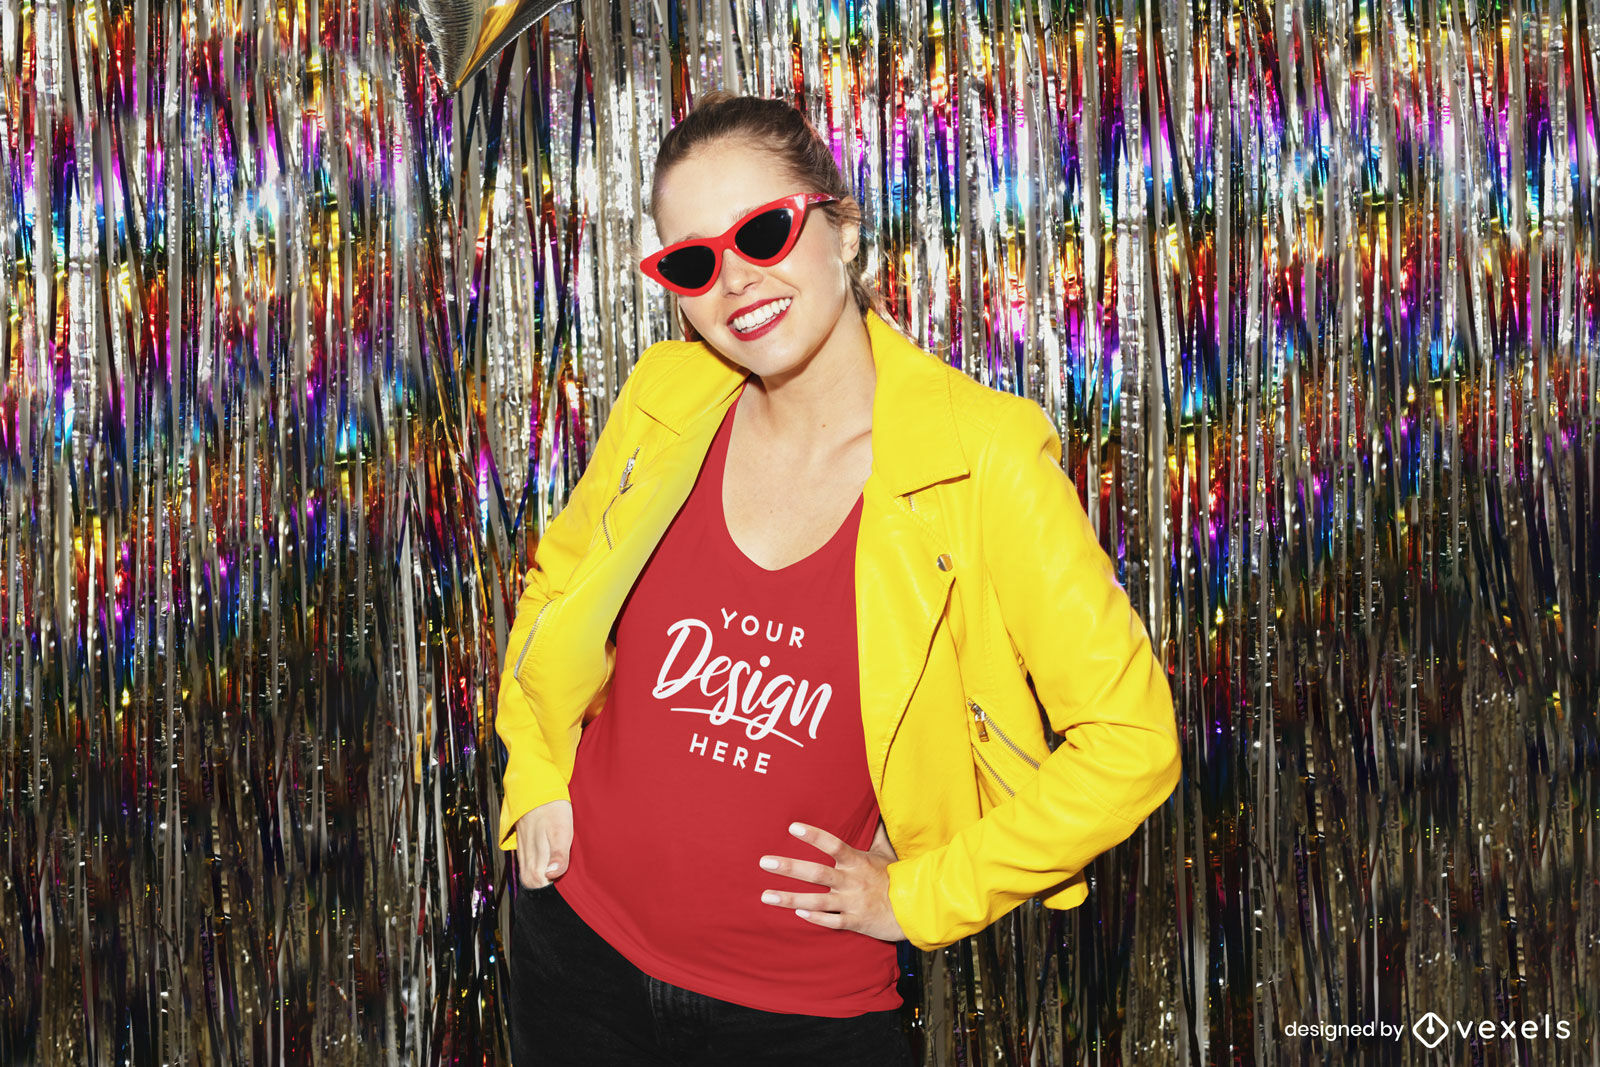 Red t-shirt girl in yellow jacket party background mockup